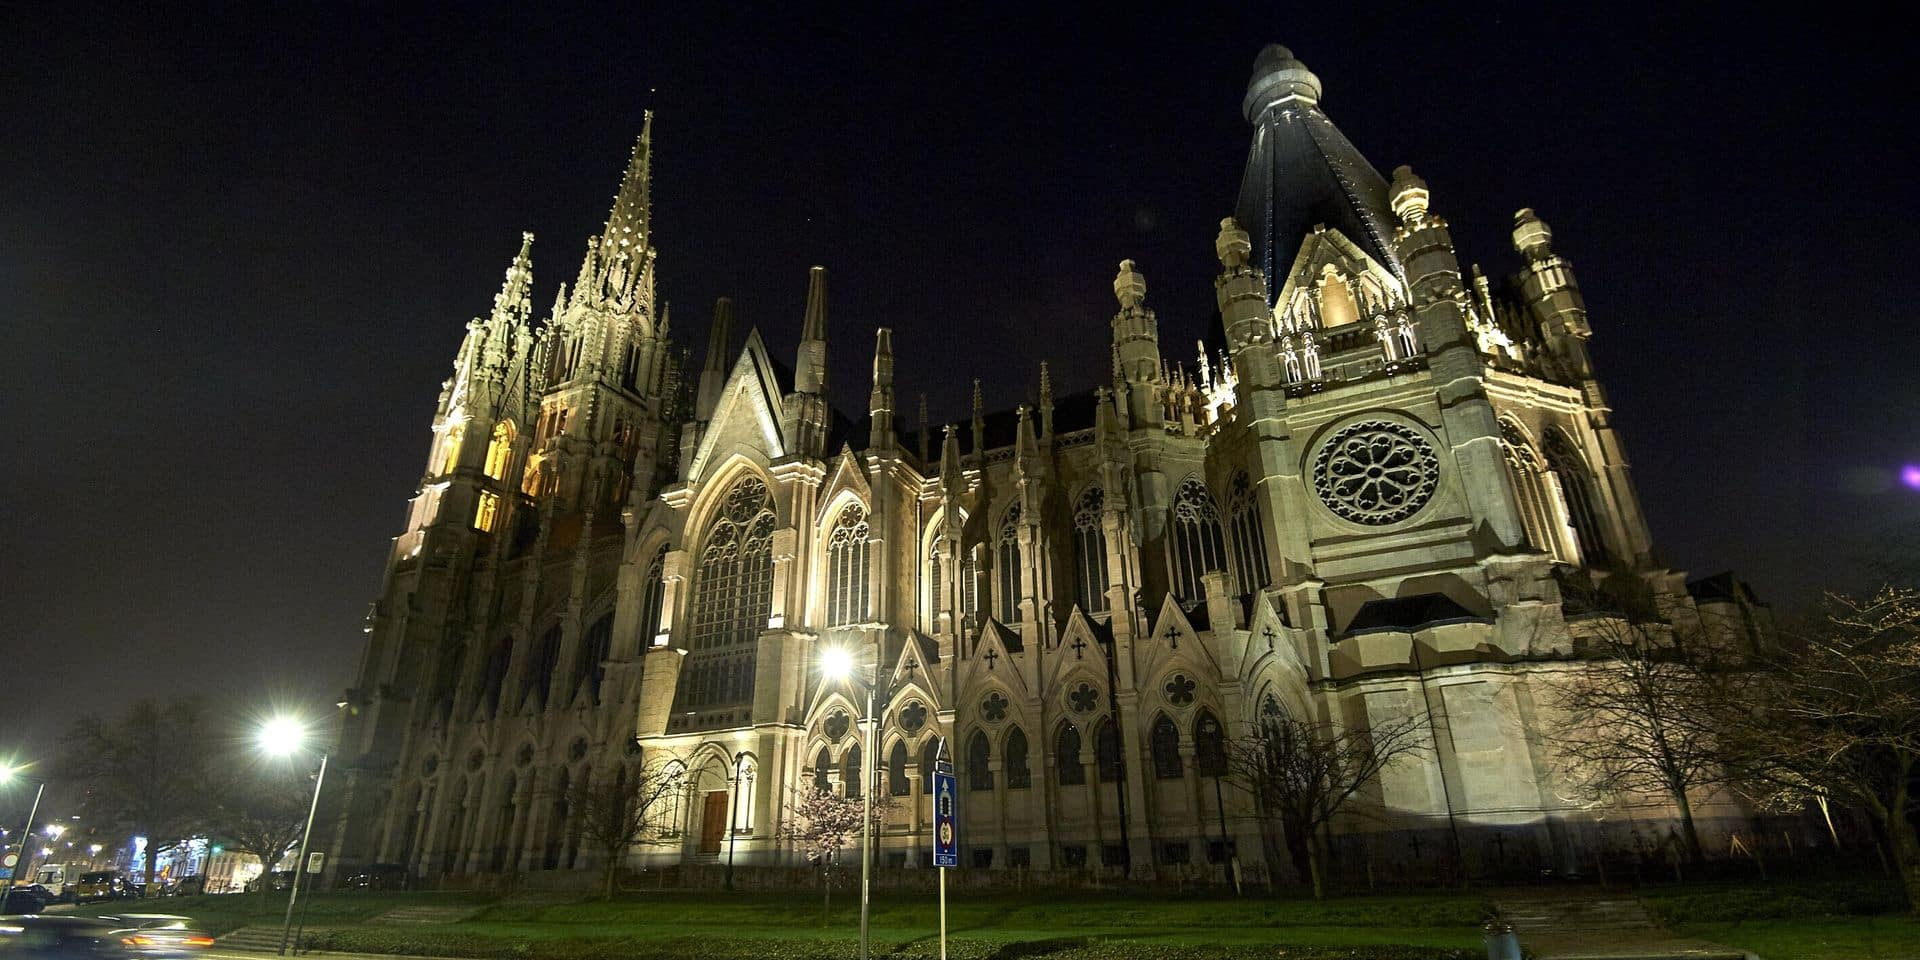 Un million d'euros pour illuminer l'église Notre-Dame de Laeken (PHOTOS)